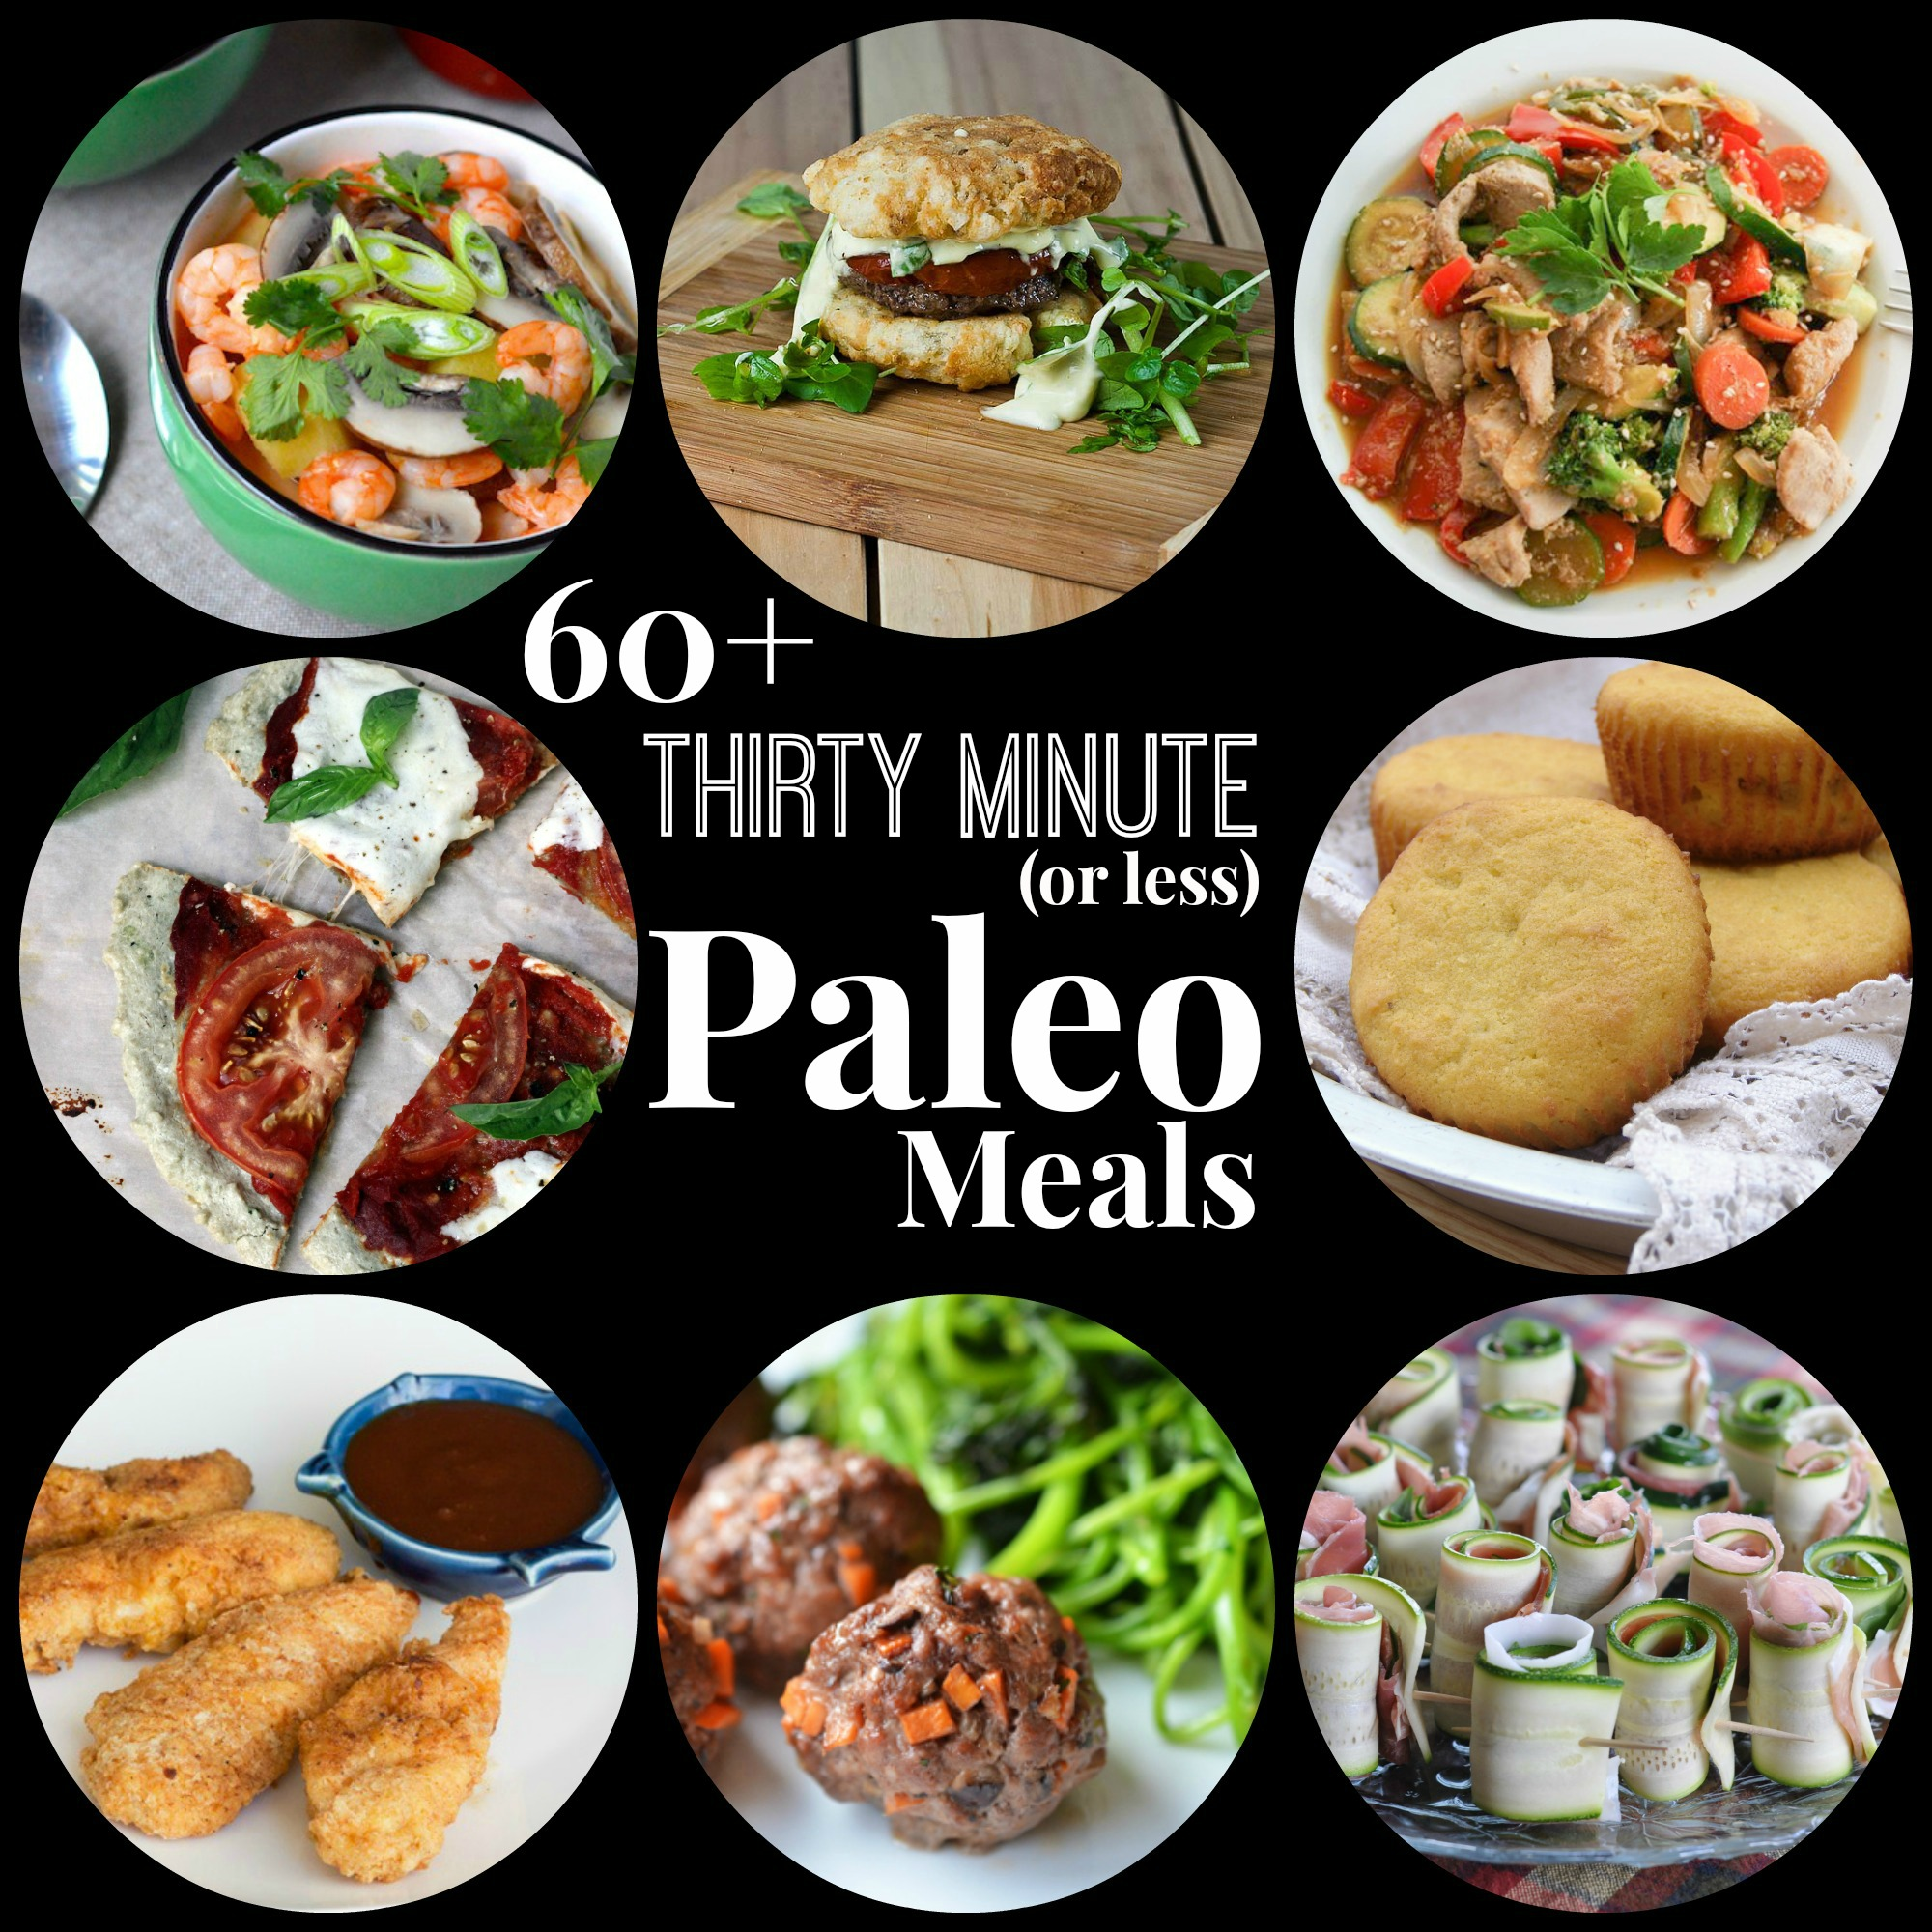 60+ Thirty Minute (or Less) Paleo Meals